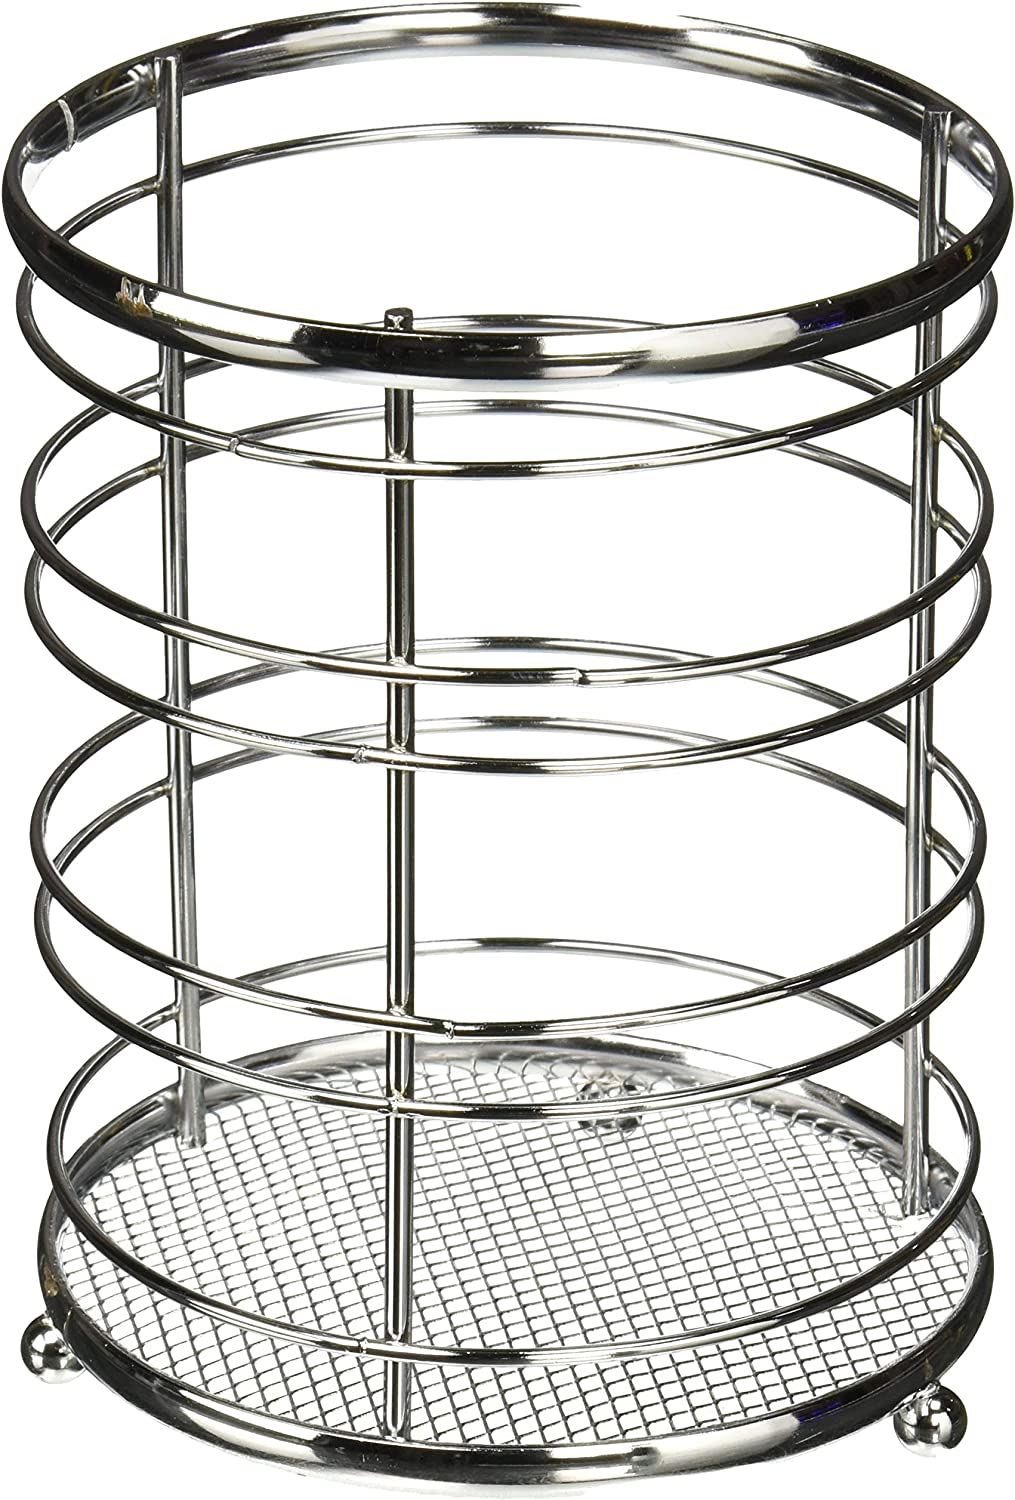 Home Basics Chrome Collection Steel Cutlery Holder Organizer, Free Standing, Kitchen Countertop, Silver